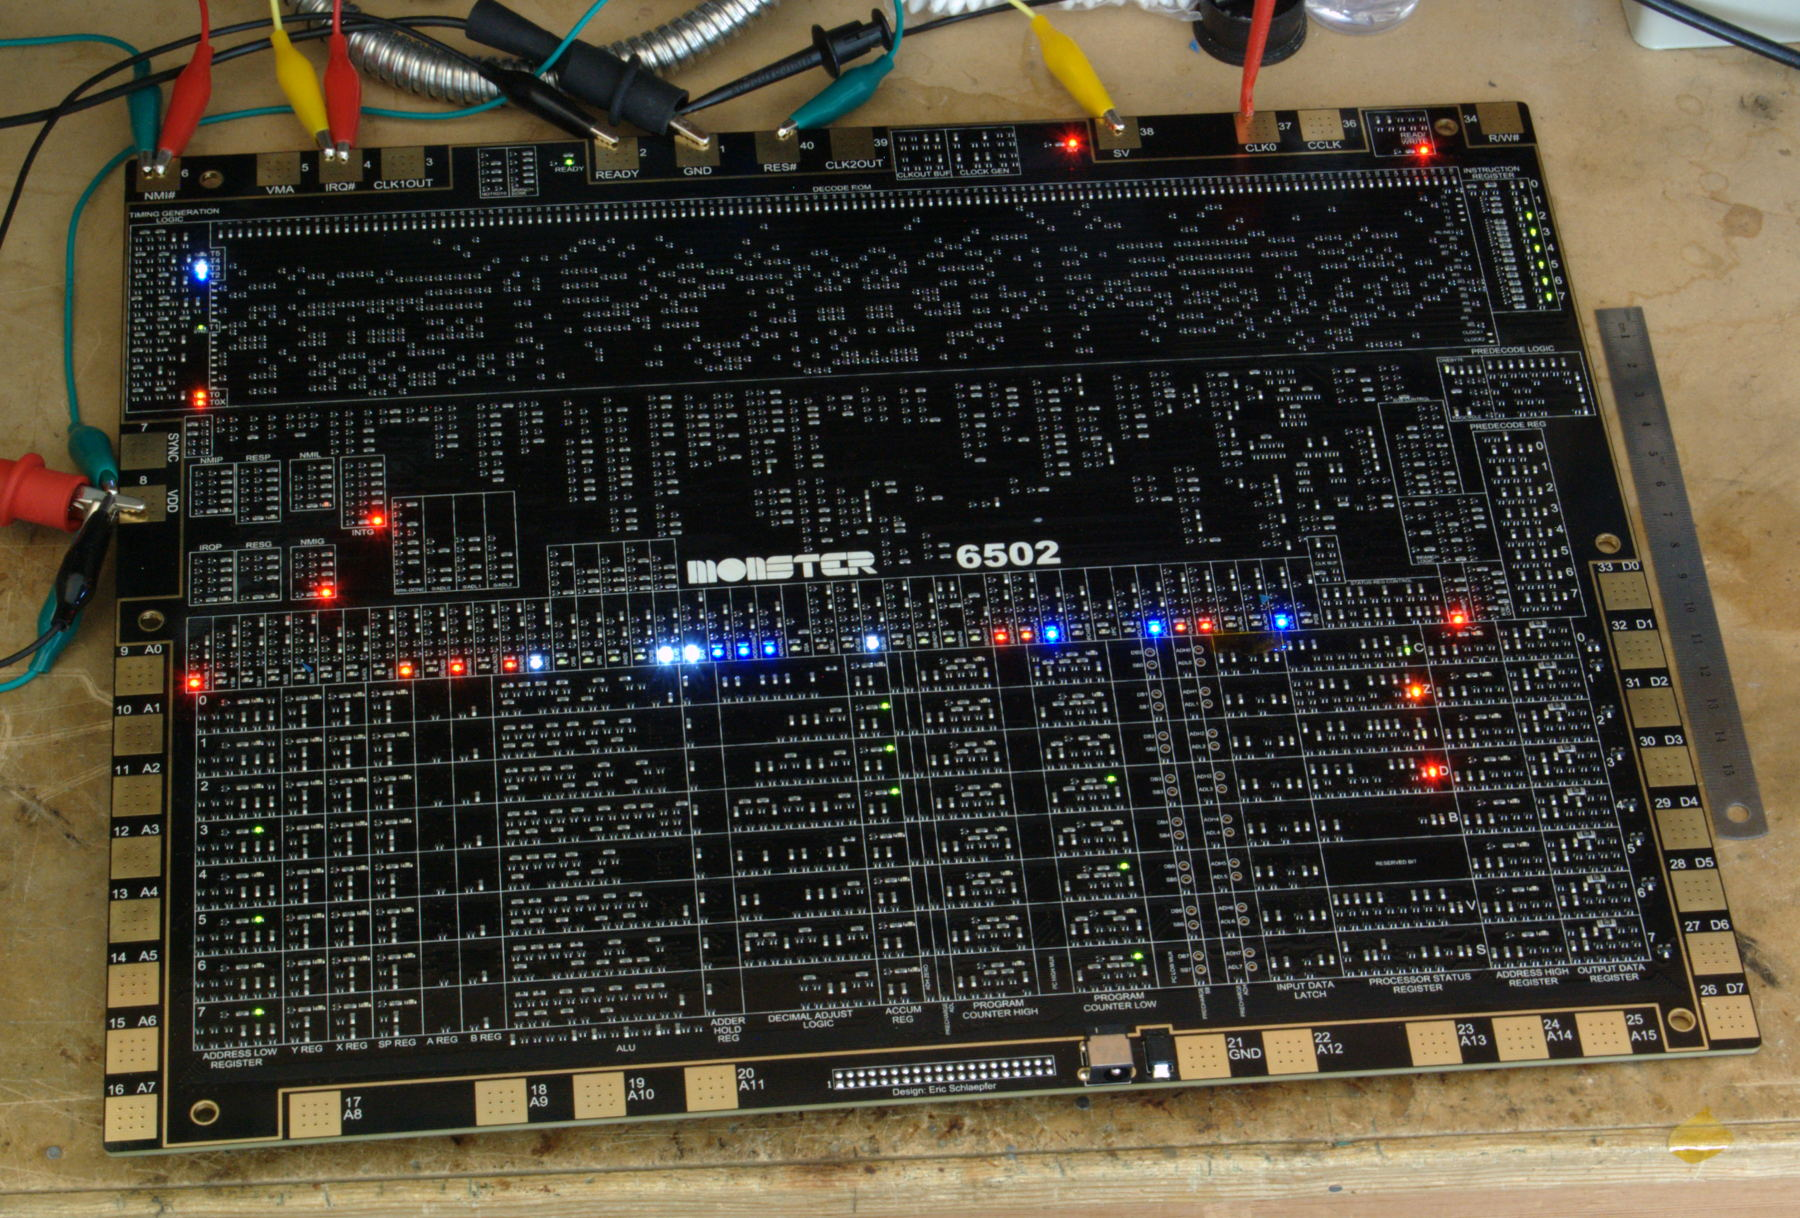 MOnSter 6502 (assembled prototype, on the work bench)